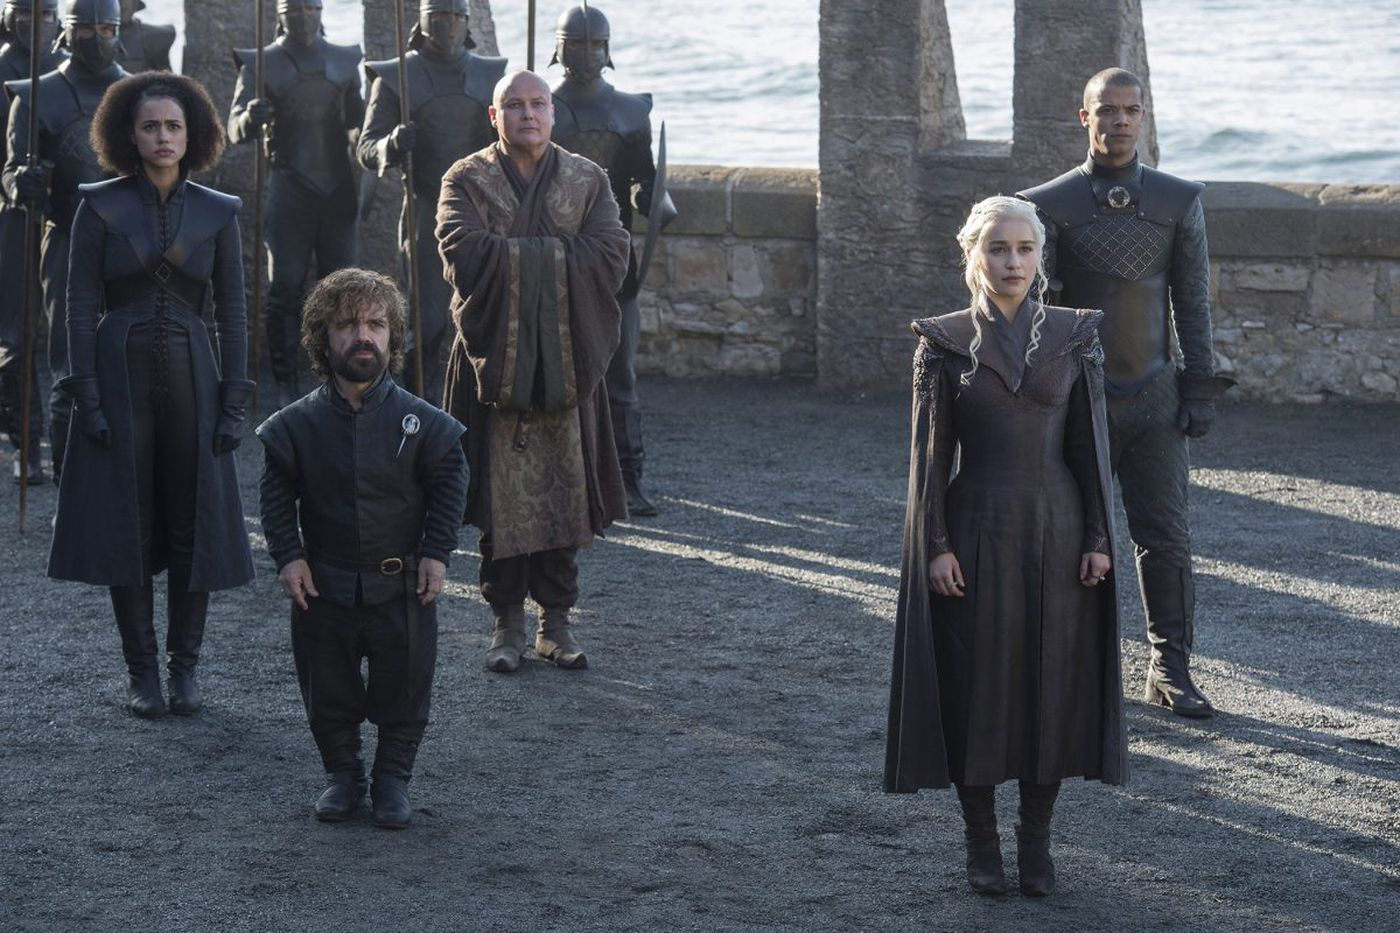 'Game of Thrones': Lessons in leadership - and luck